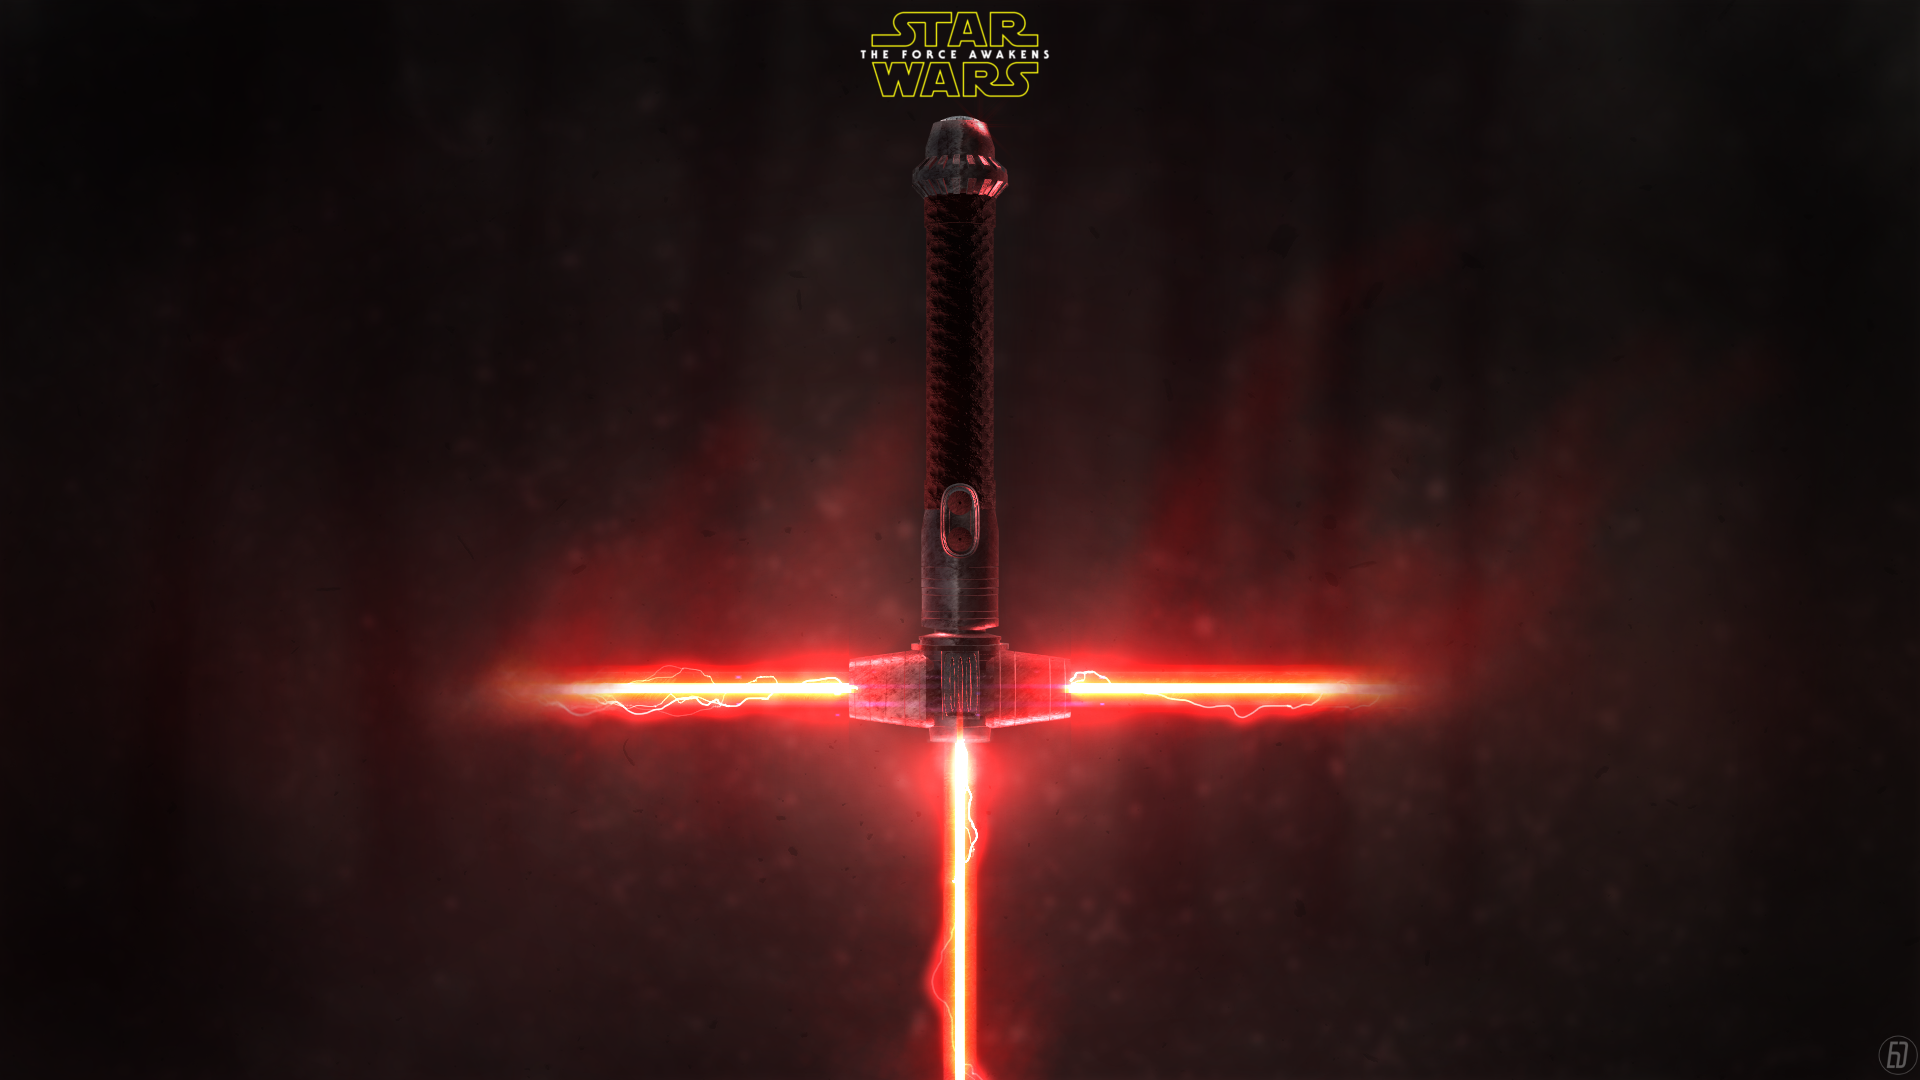 Wars The Force Awakens New Lightsaber by spiritdsgn 1920x1080